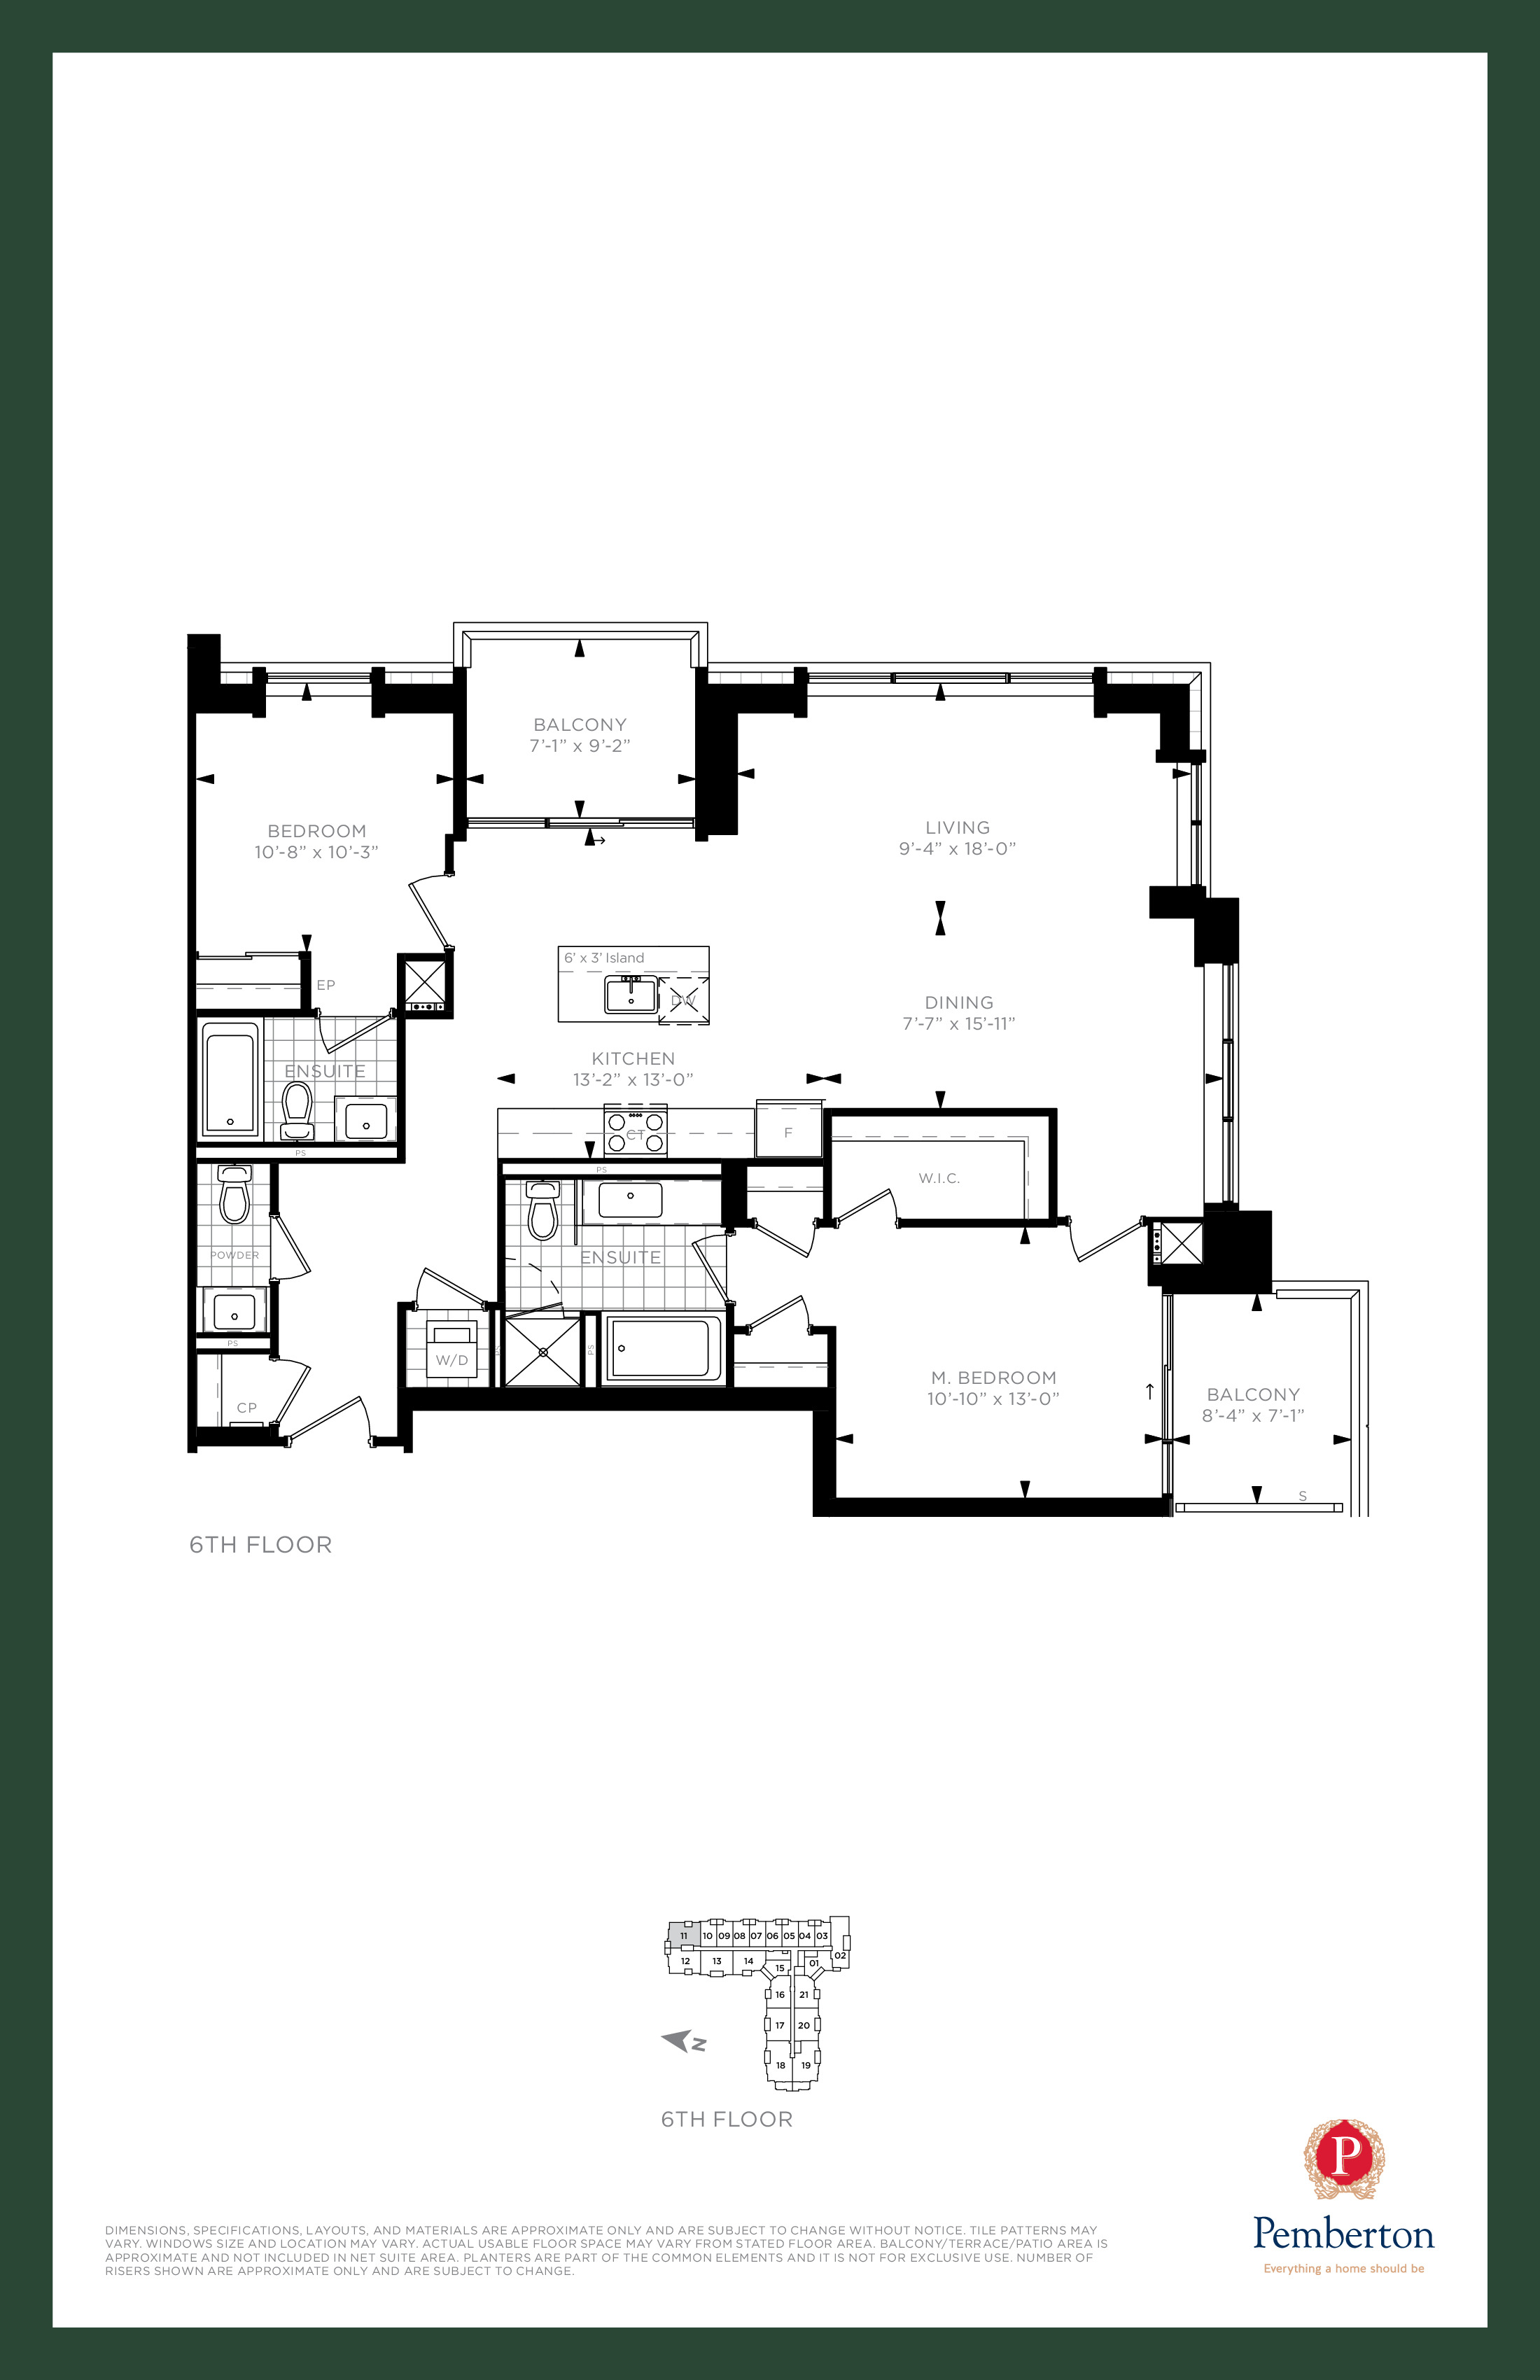 Suite L1 - Building A Floor Plan at 9th & Main Condos + Towns - 1250 sq.ft